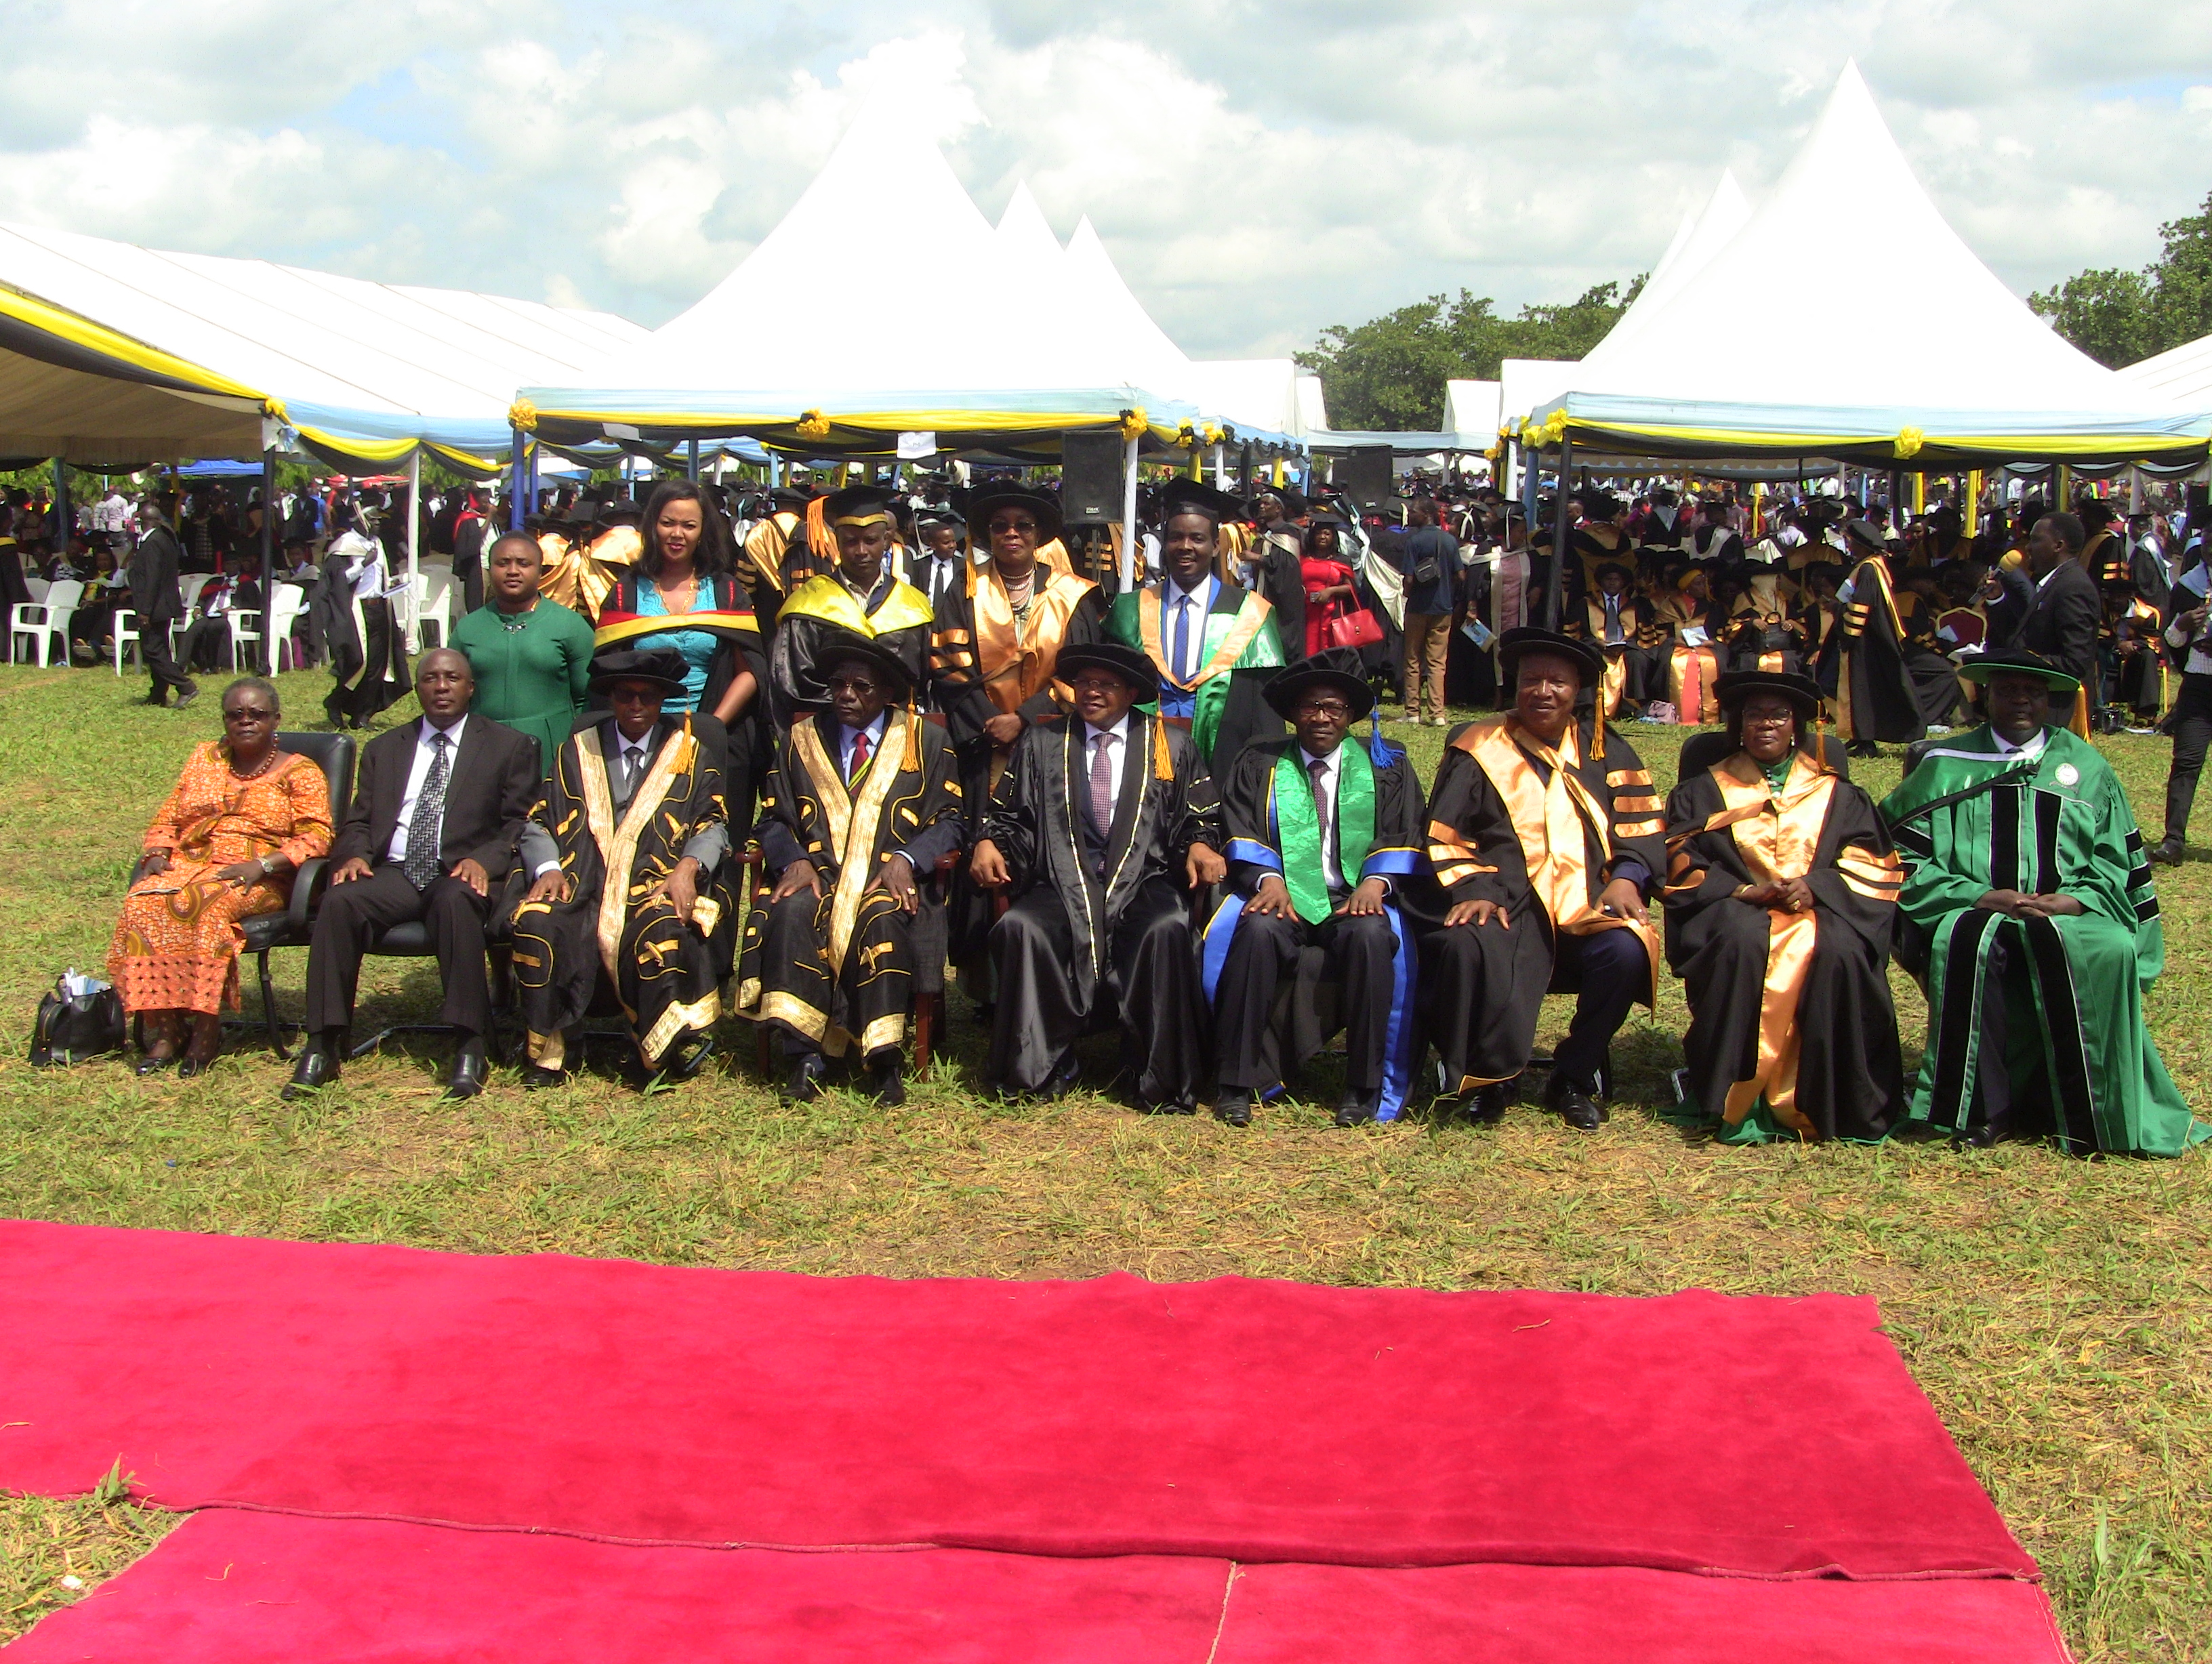 Group photo; Guest of honor former President of the United Republic of Tanzania Hon. Dr. JakayaKikwete (at the center) with the Open University of Tanzania(OUT) Management as well as MPs and Governmentleaders  graduated at the 37th graduation ceremony held on 28th  September 2019 at Bungo, Kibaha